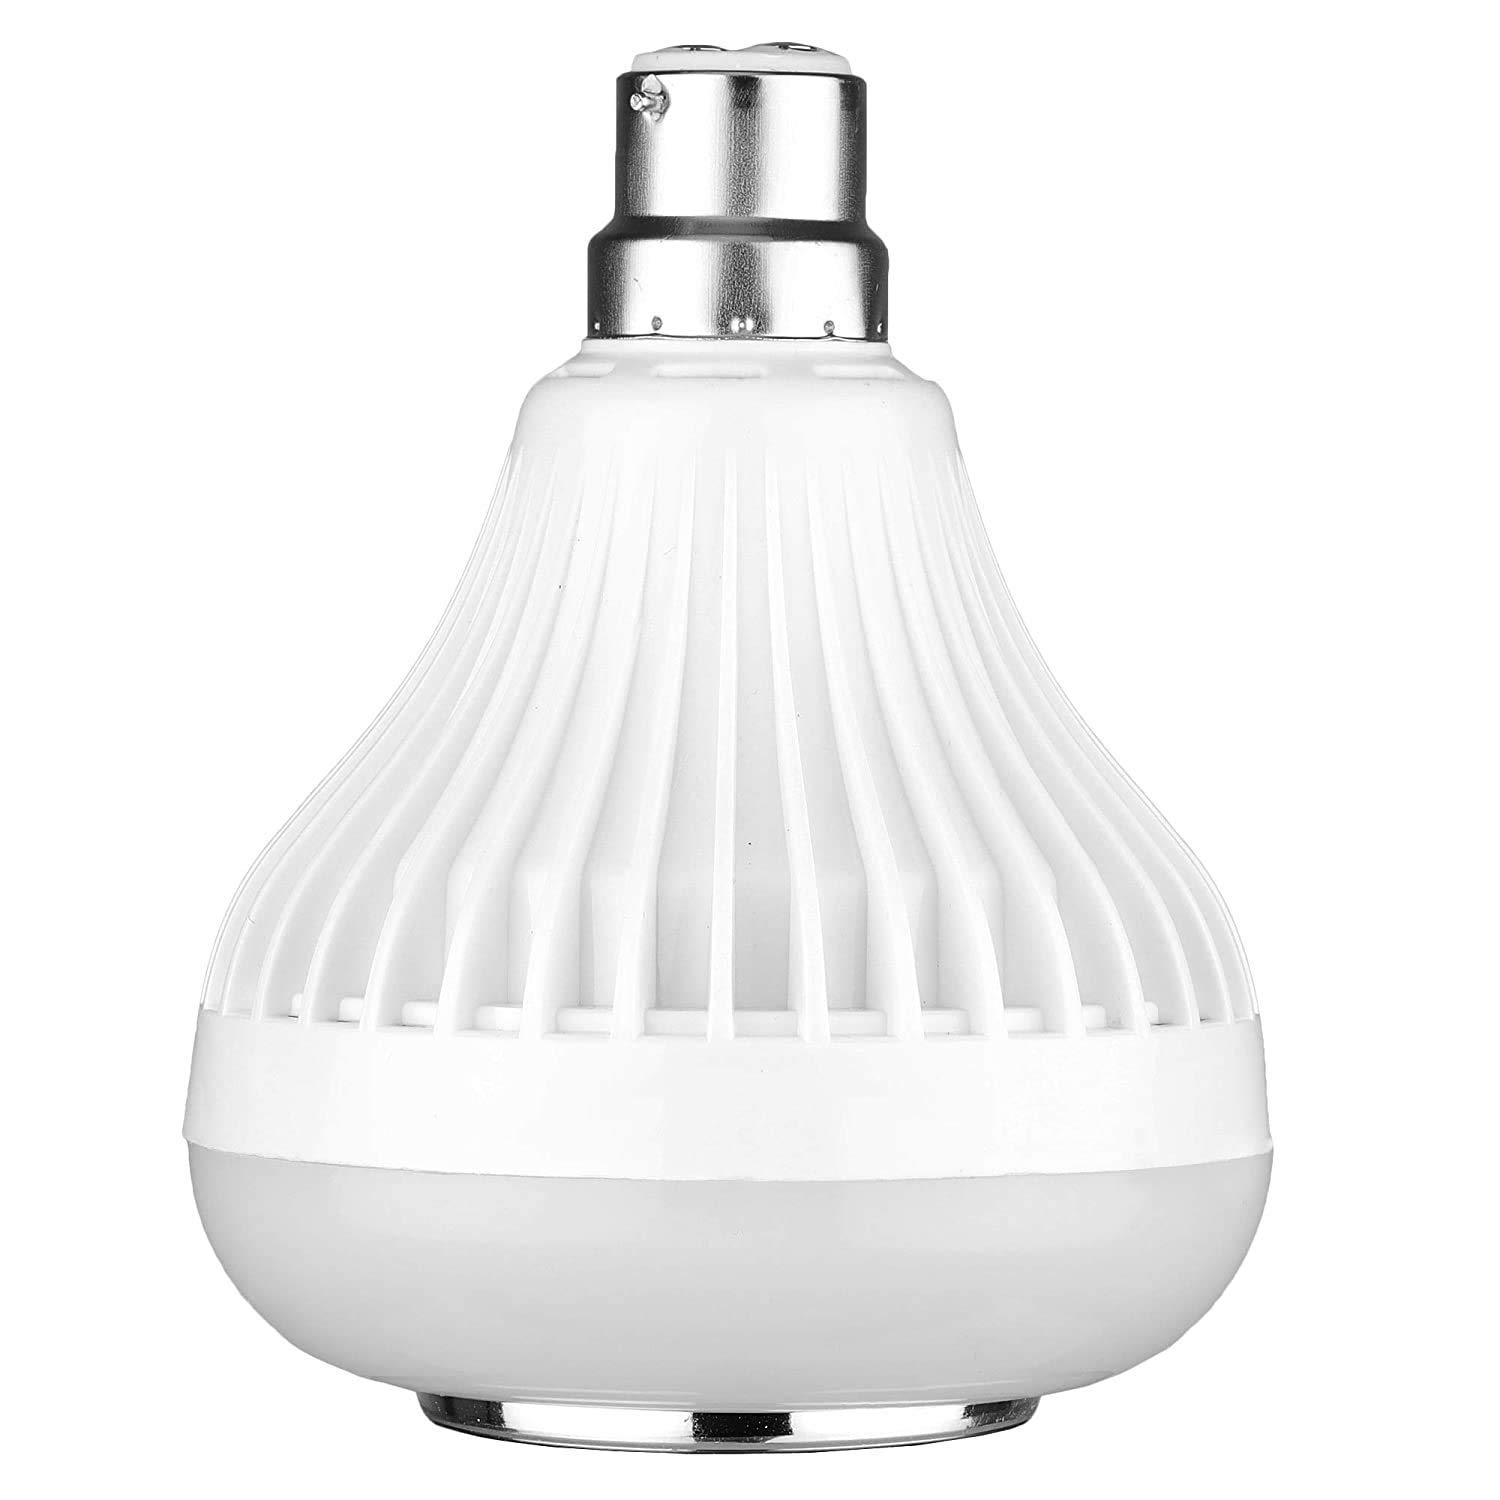 Lazywindow Bulb with Bluetooth Speaker, Color Lamp Built in Audio Speaker for Home, Bedroom, Living Room, Party